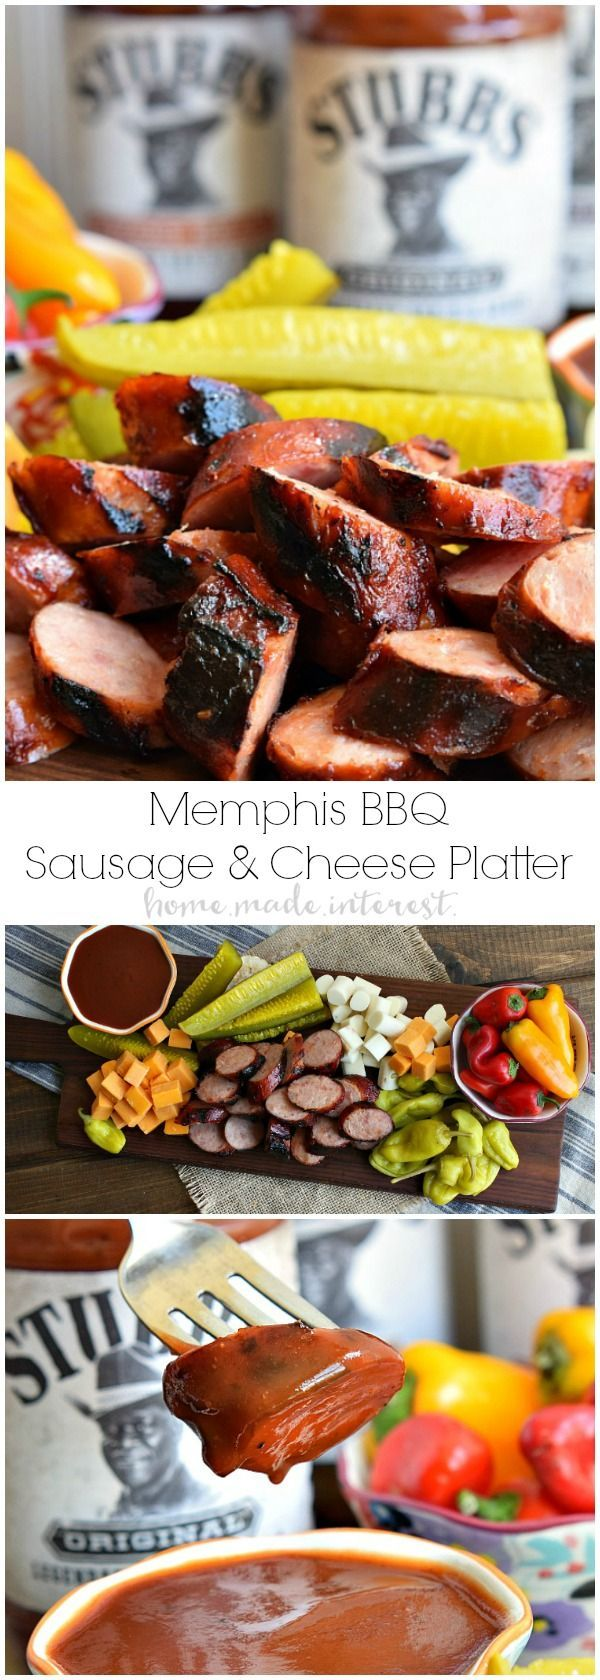 If you love Memphis barbeque then you are going to love this Memphis BBQ Sausage Platter. It is a traditional BBQ appetizer with BBQ grilled sausage, cheese, peppers and pickles. This is a great summer BBQ recipe that is perfect to take to a party or a co